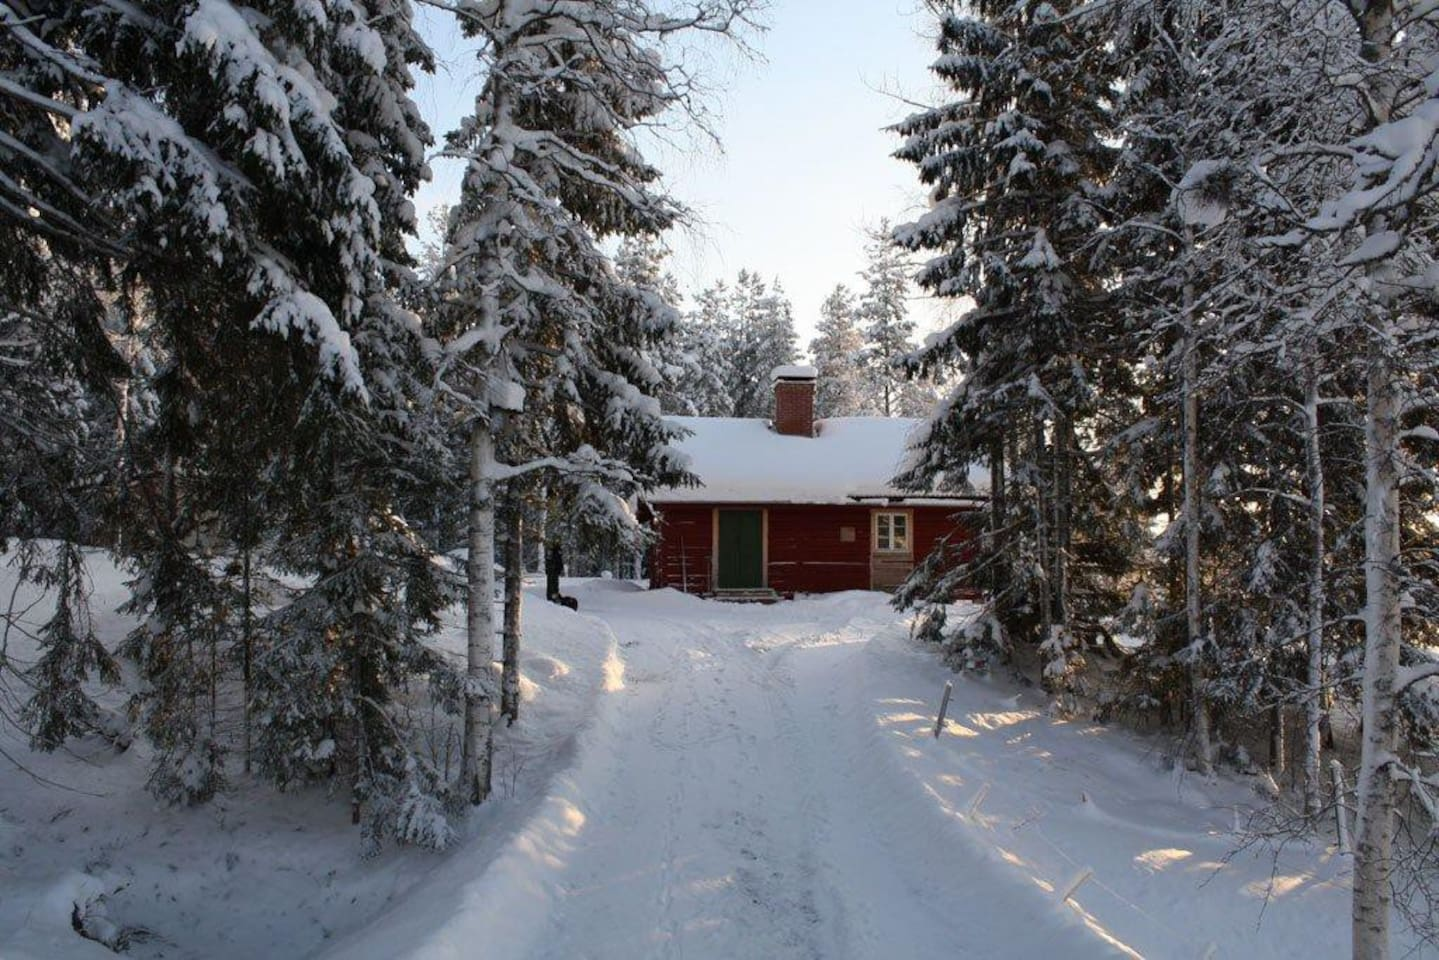 The cabin in the snowy winter.